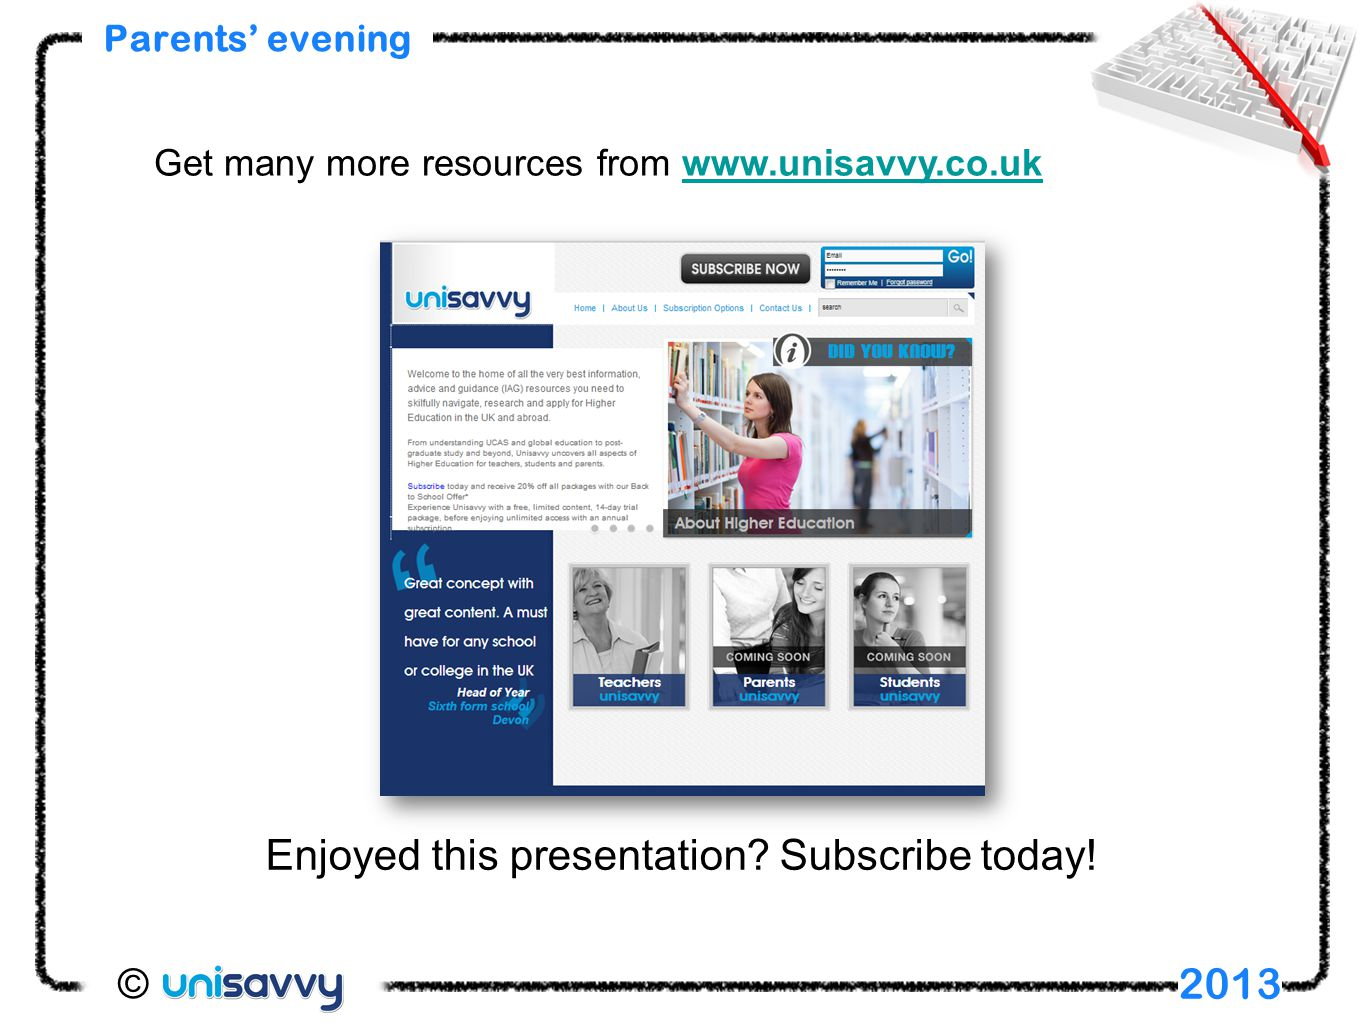 Parents' evening 2013 Get many more resources from www.unisavvy.co.ukwww.unisavvy.co.uk Enjoyed this presentation? Subscribe today!